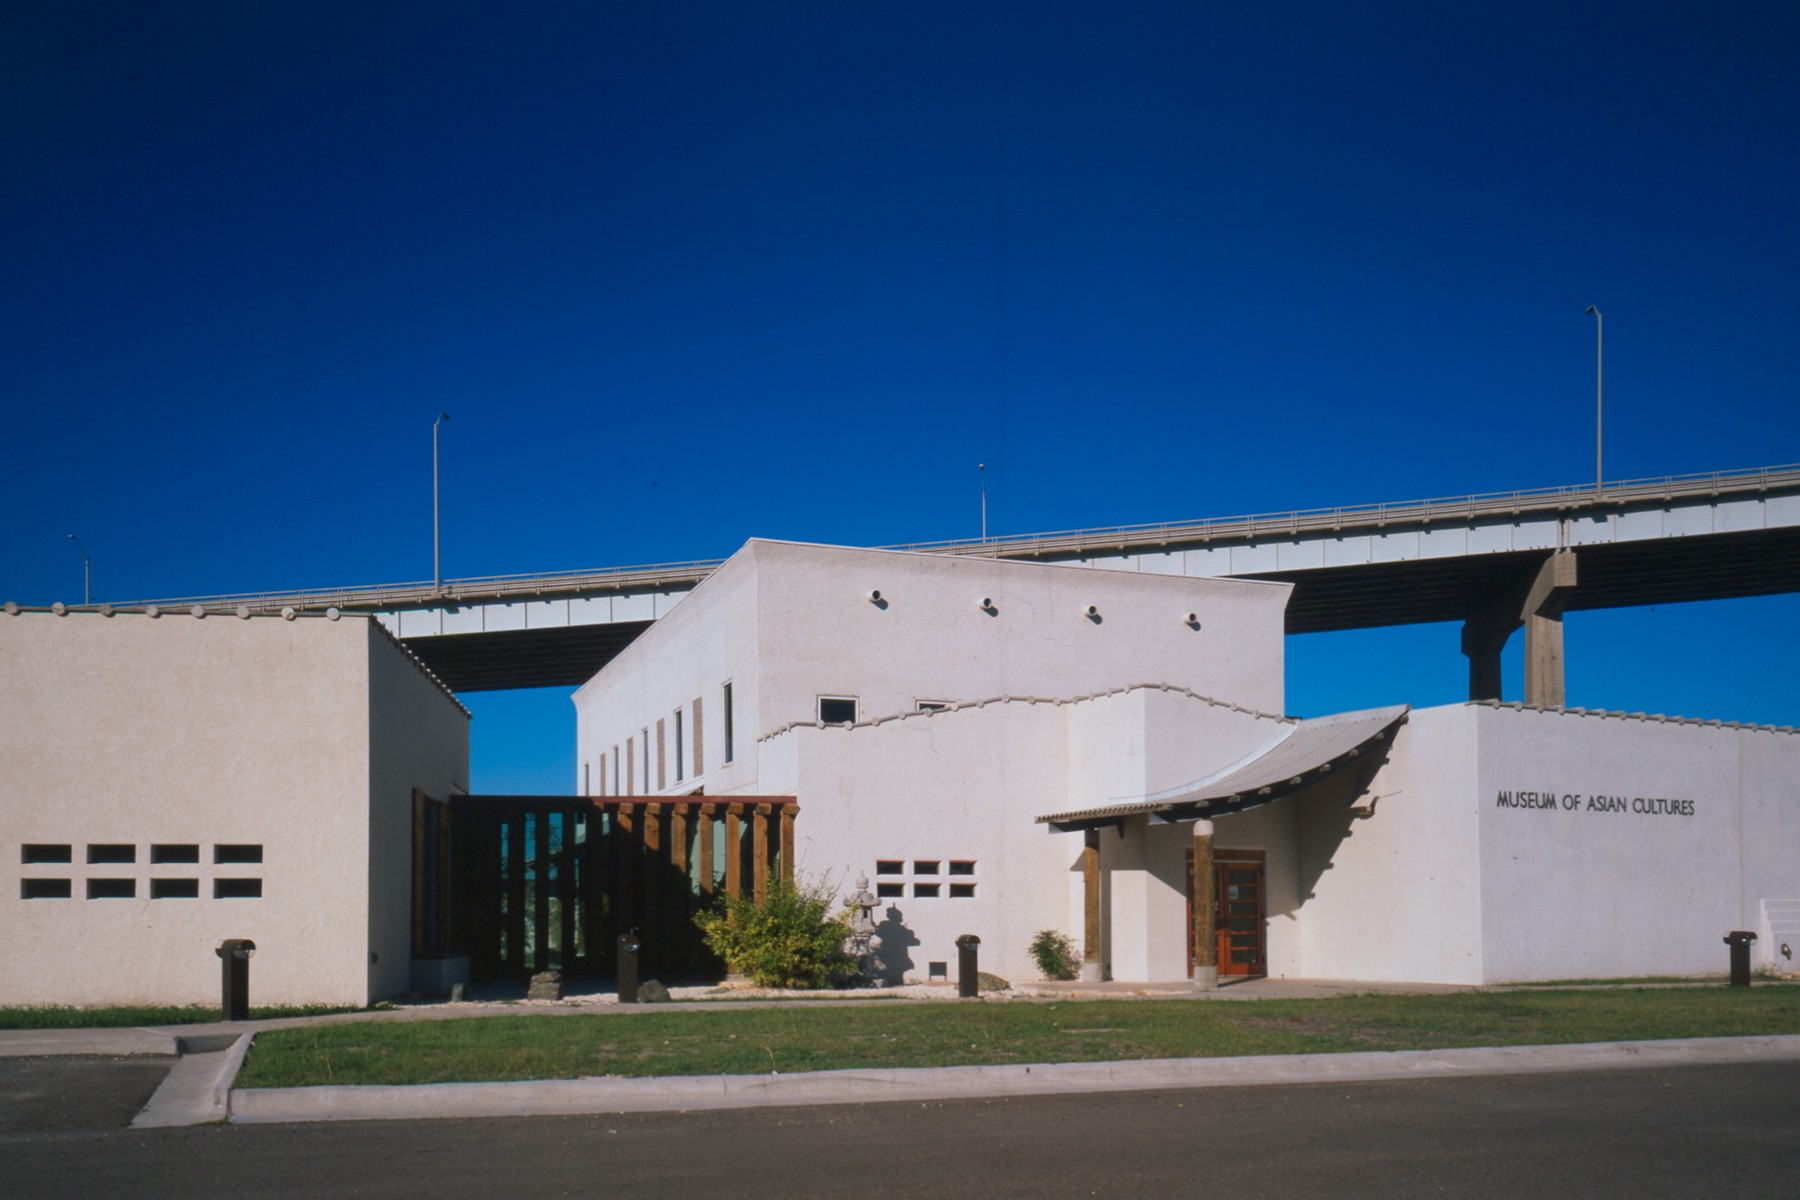 THE MUSEUM OF ASIAN CULTURES